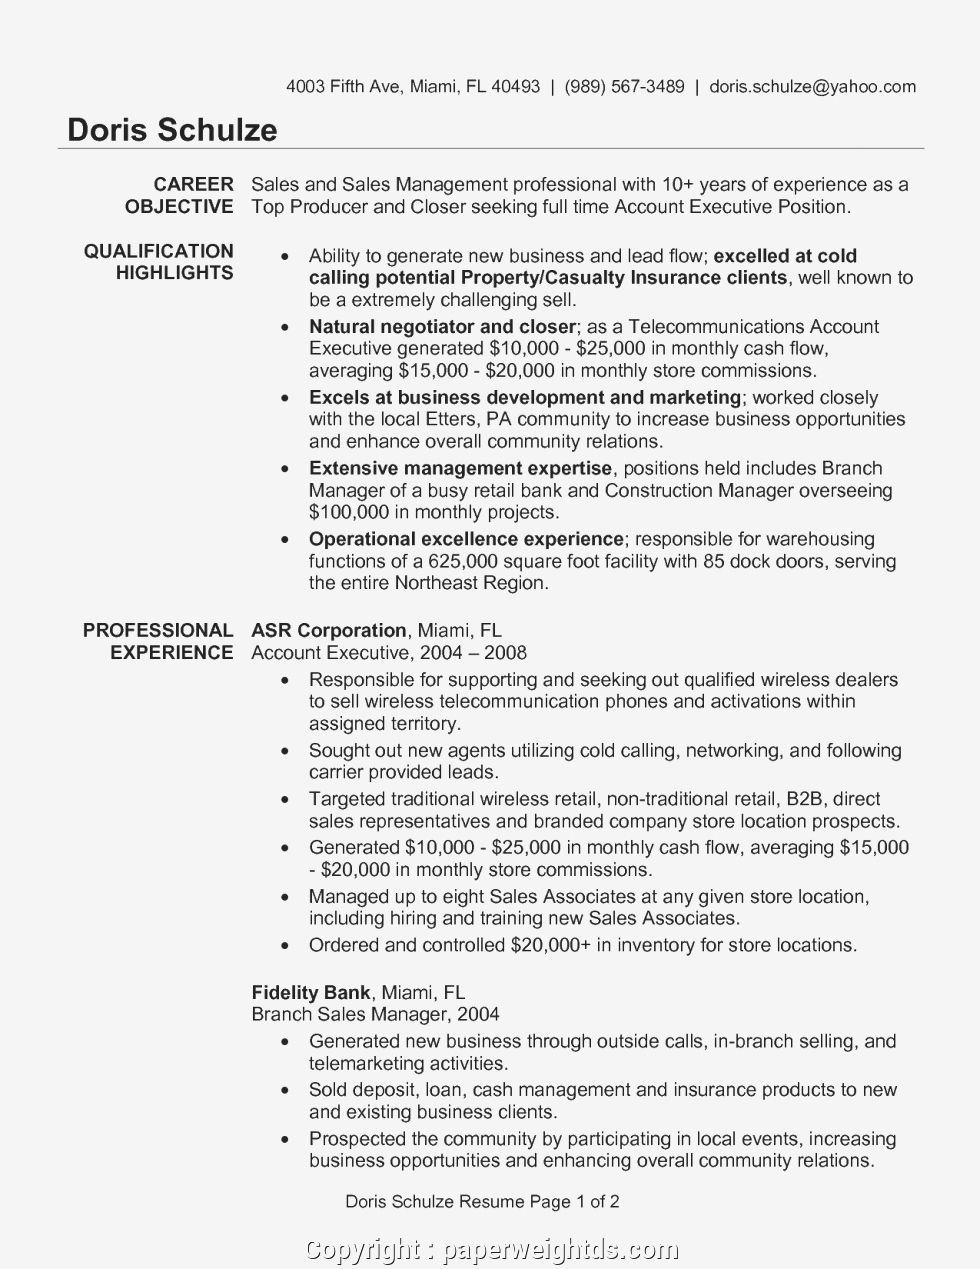 Account Executive Sample Resume Account Manager Sample Resume Account Executive Resume Examples Key A Best Resume Template Resume Examples Account Executive